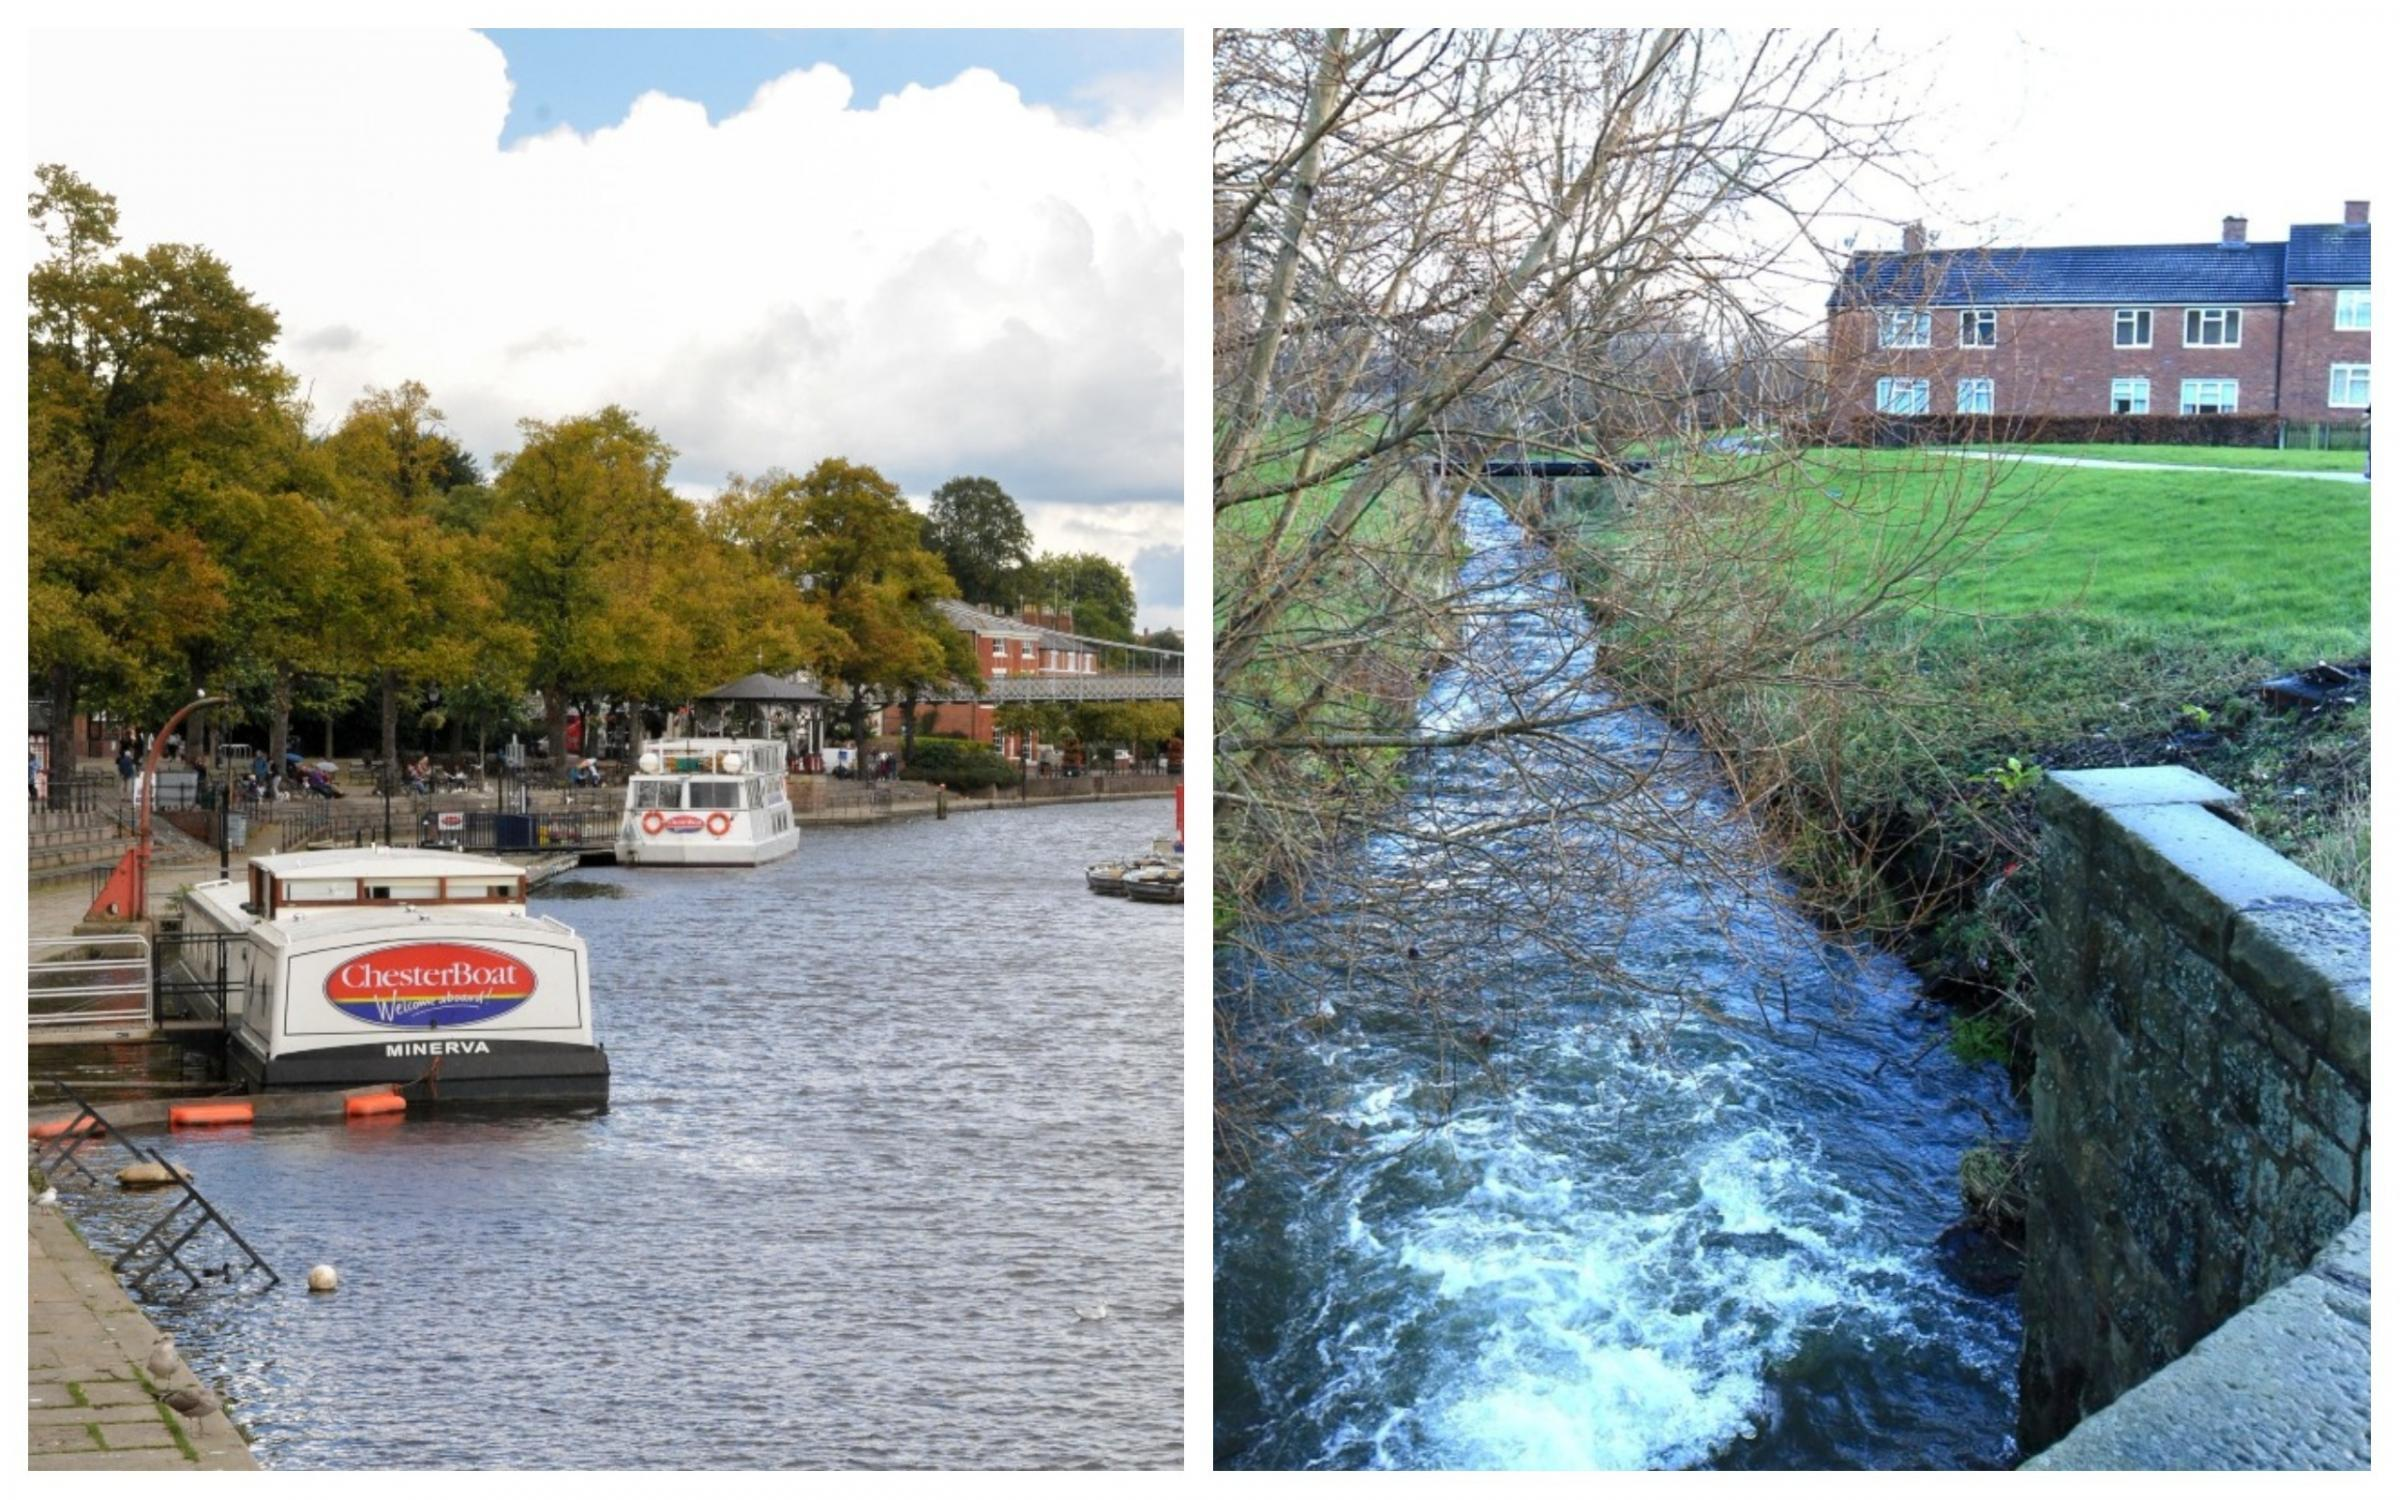 The River Dee in Chester and the Gwenfro in Wrexham.